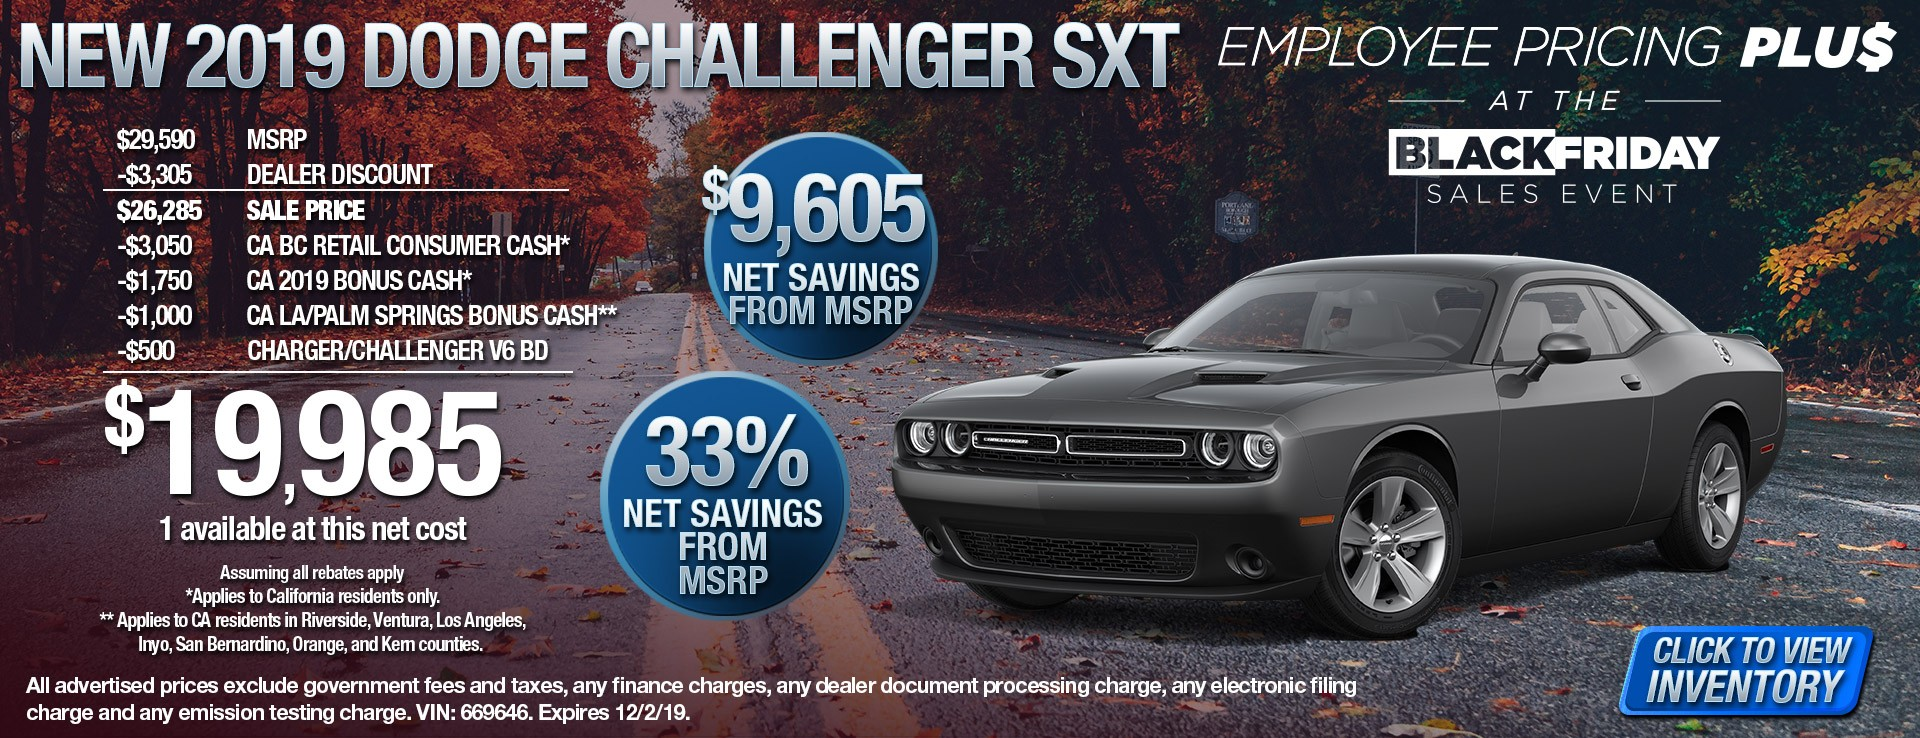 2019 Dodge Challenger SXT - $9605 Net Savings from MSRP